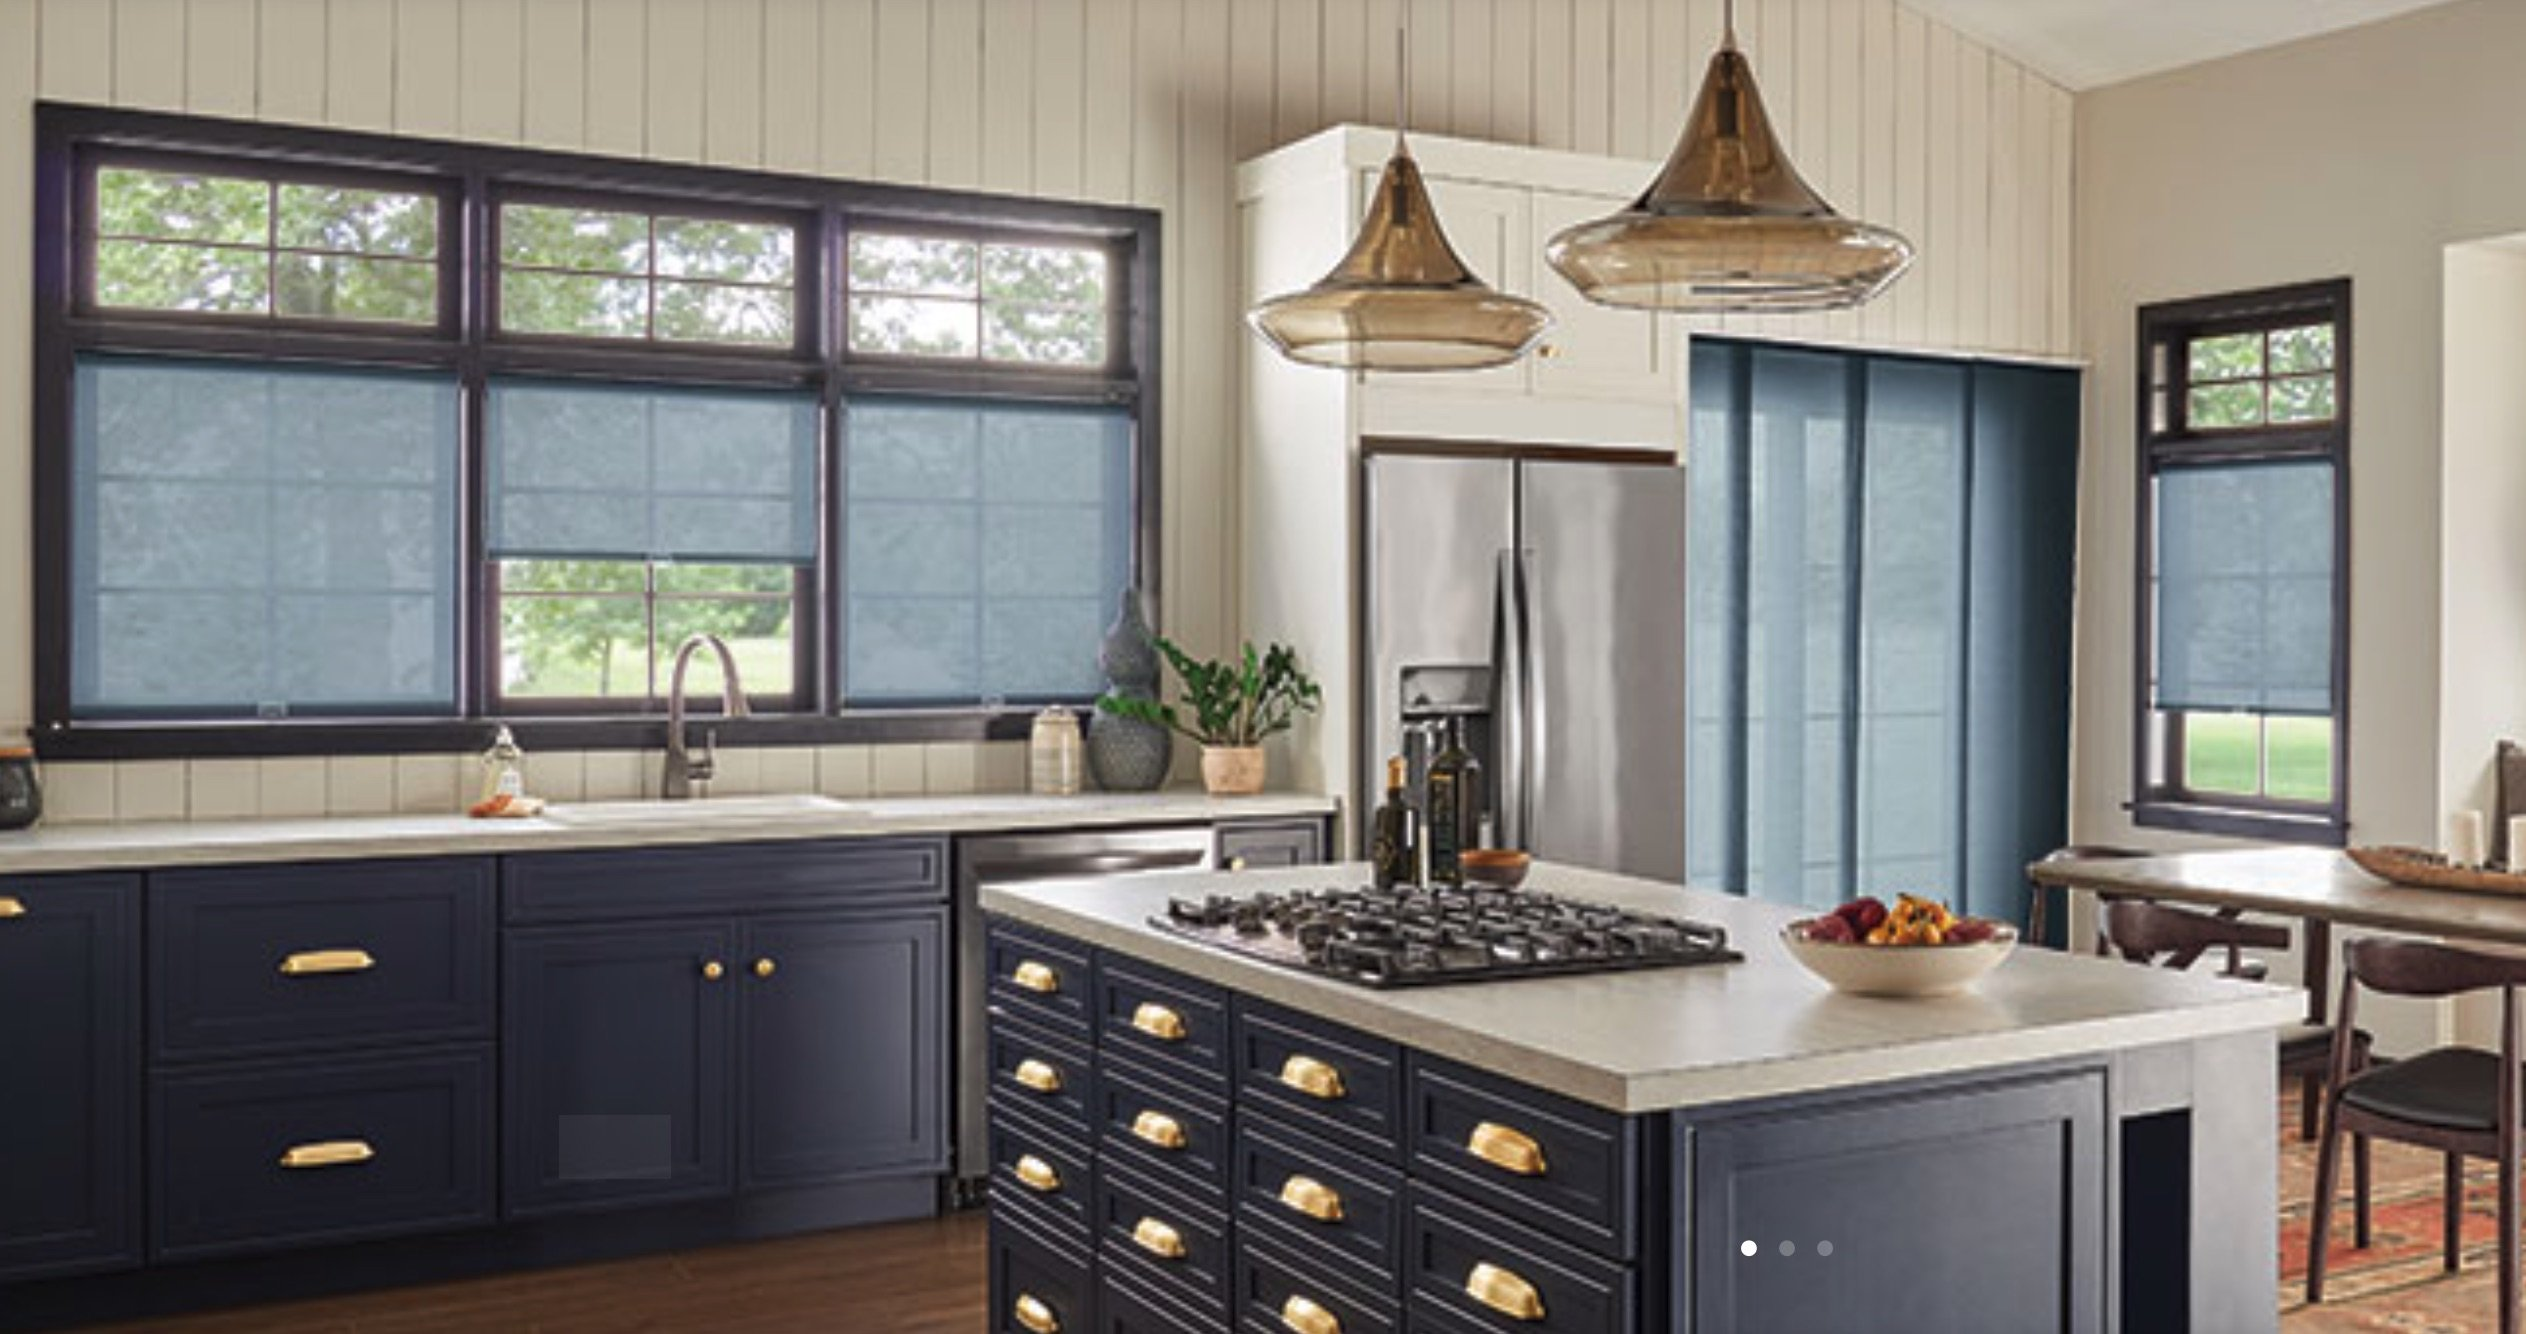 Why Choose Custom Window Shades for Homes or Commercial Spaces?